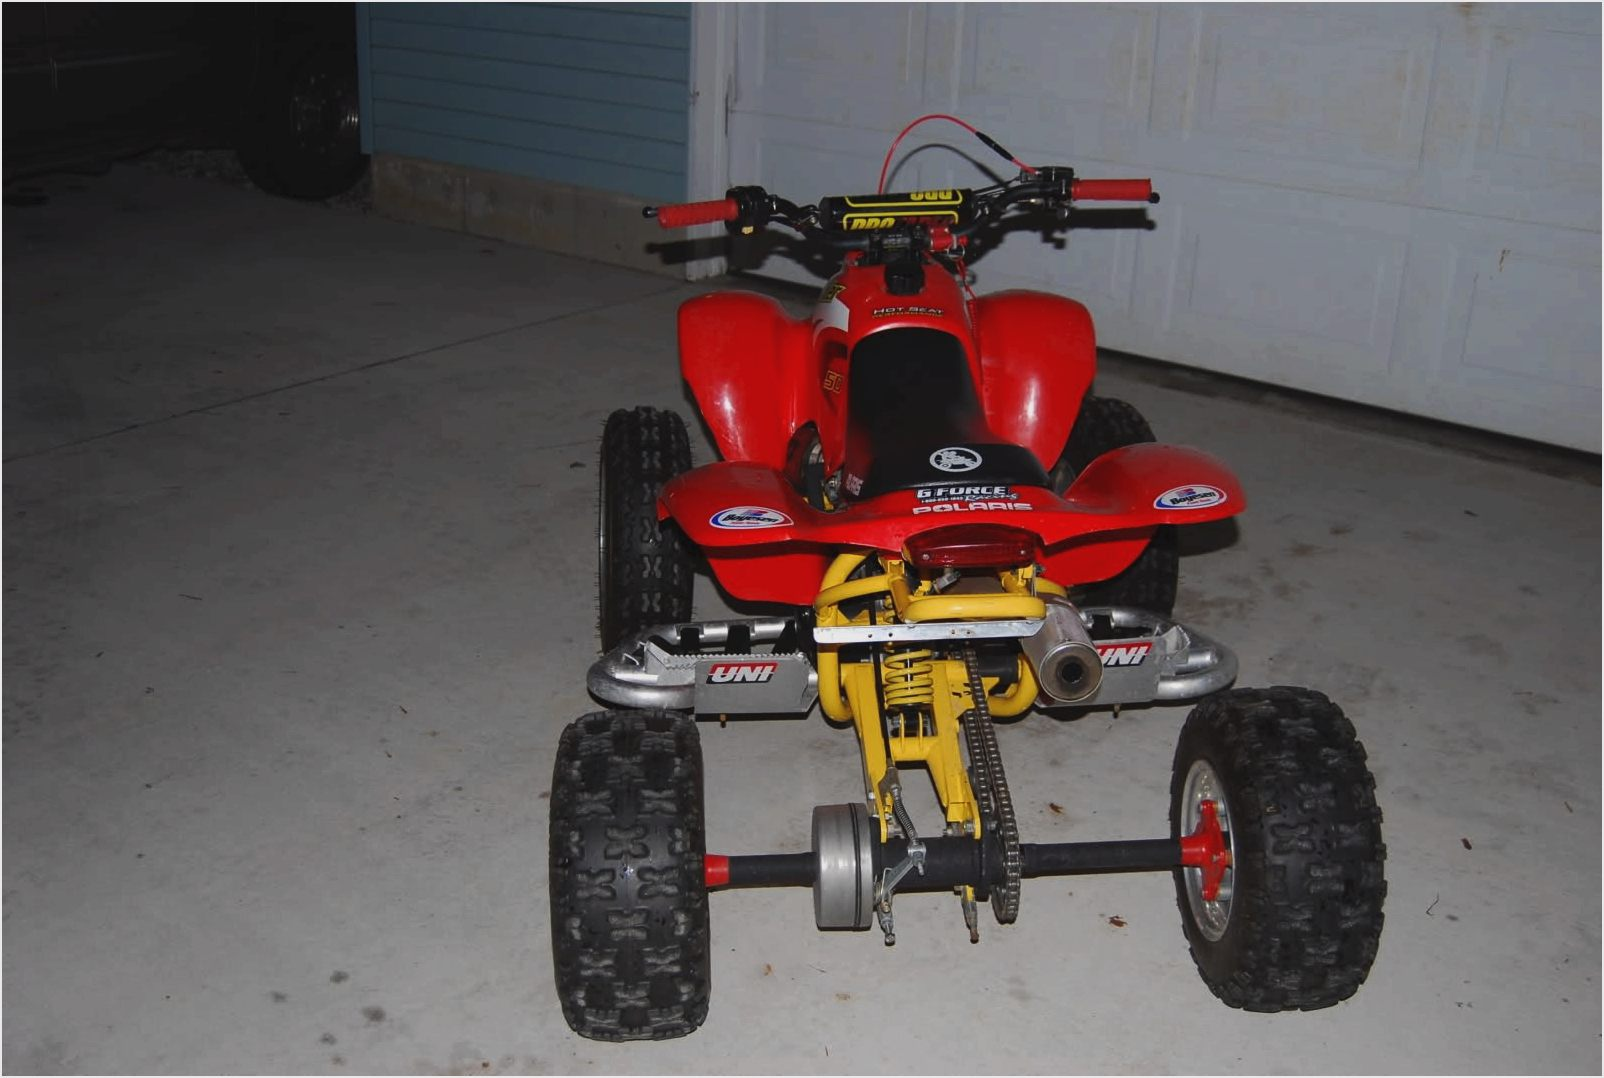 Polaris Scrambler 400 images #158393